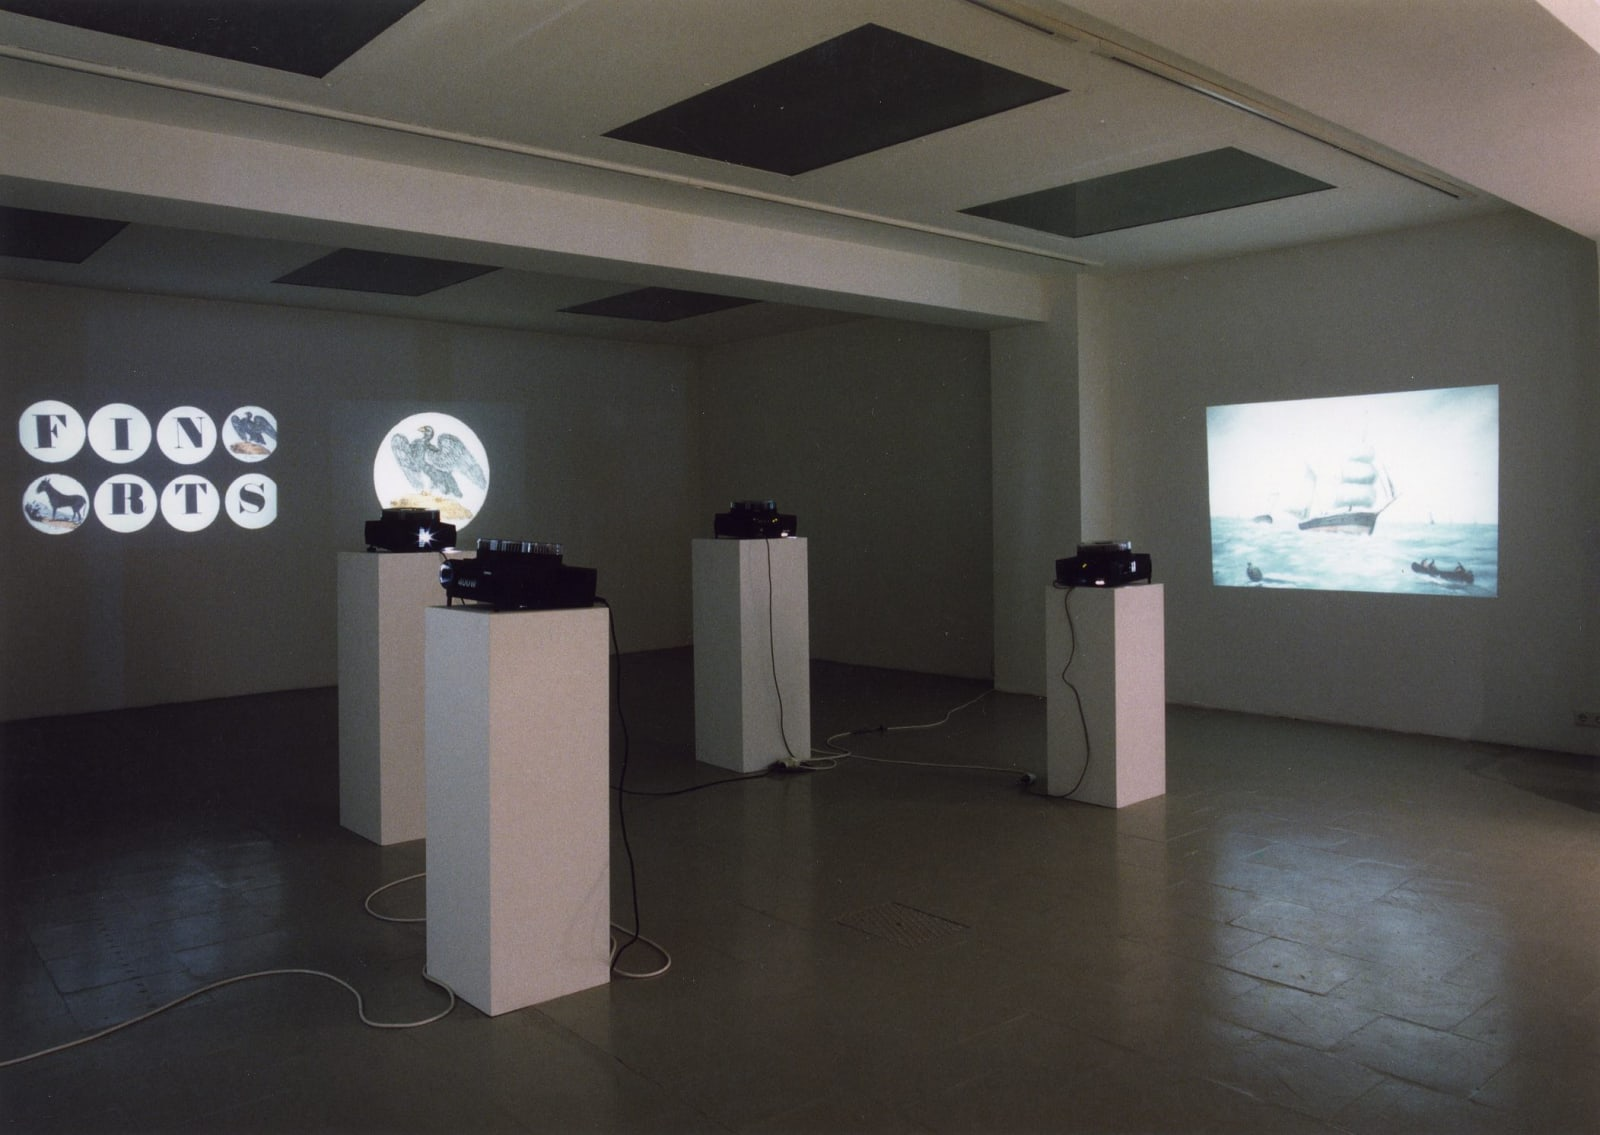 Marcel Broodthaers, Projections, 1970-1974, Exhibition view, 6 December 1997 – 31 January 1998, Erna Hecey Gallery, Luxembourg, Photo © Patrick Mueller